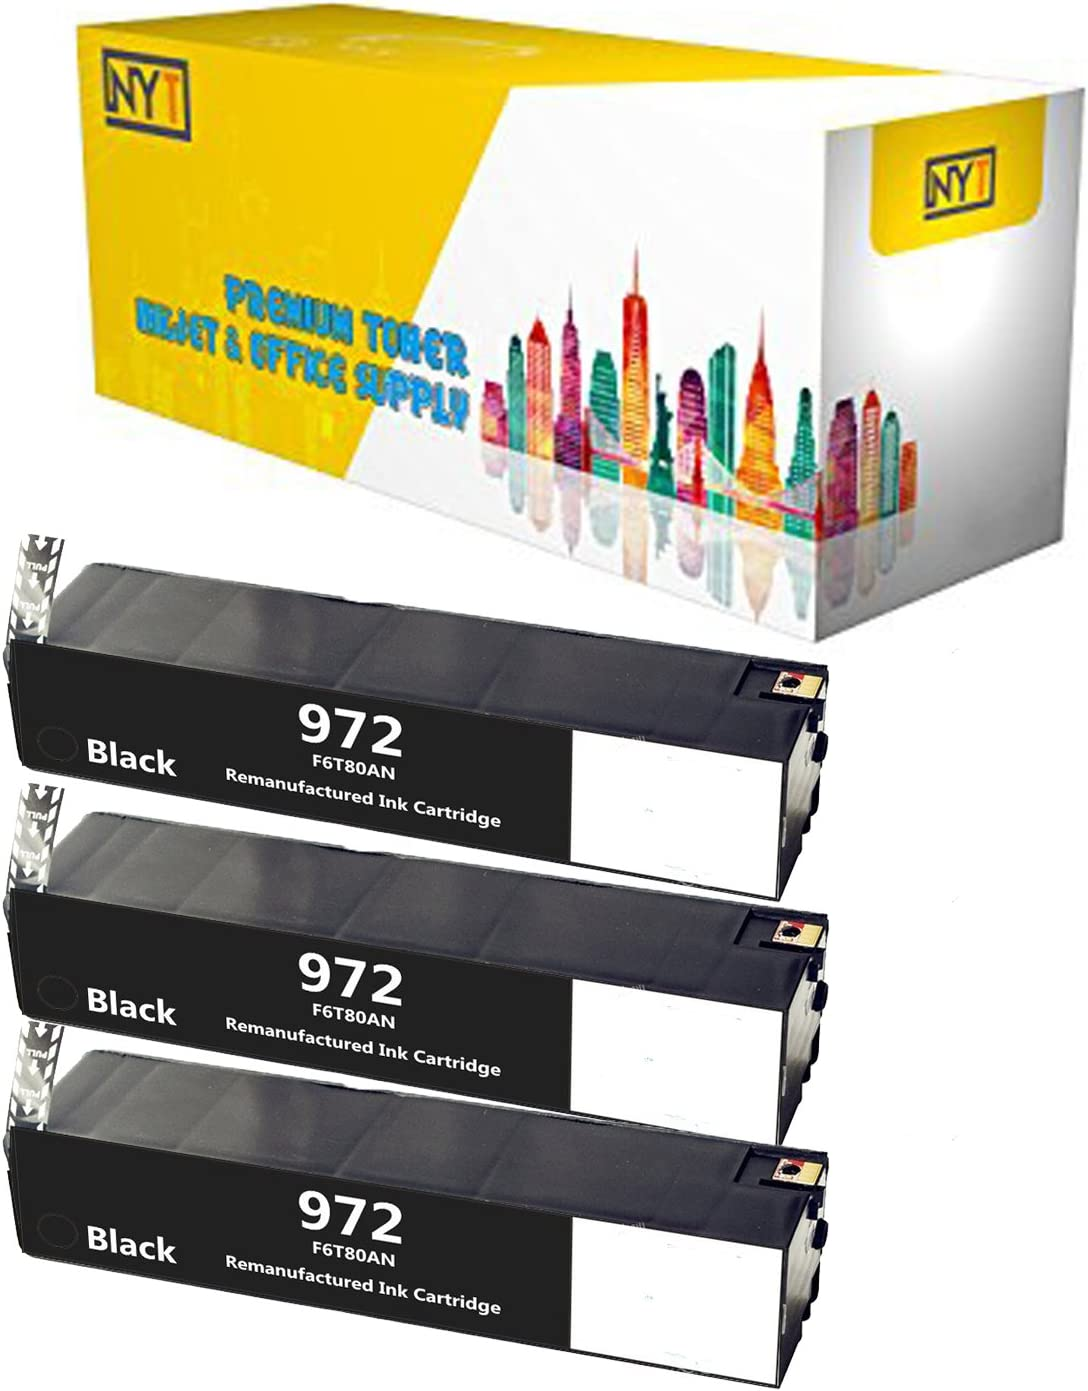 Black NYT New Compatible 3 Pack HP 972A F6T80AN Ink Cartridge for HP Pagewide Pro 352 377